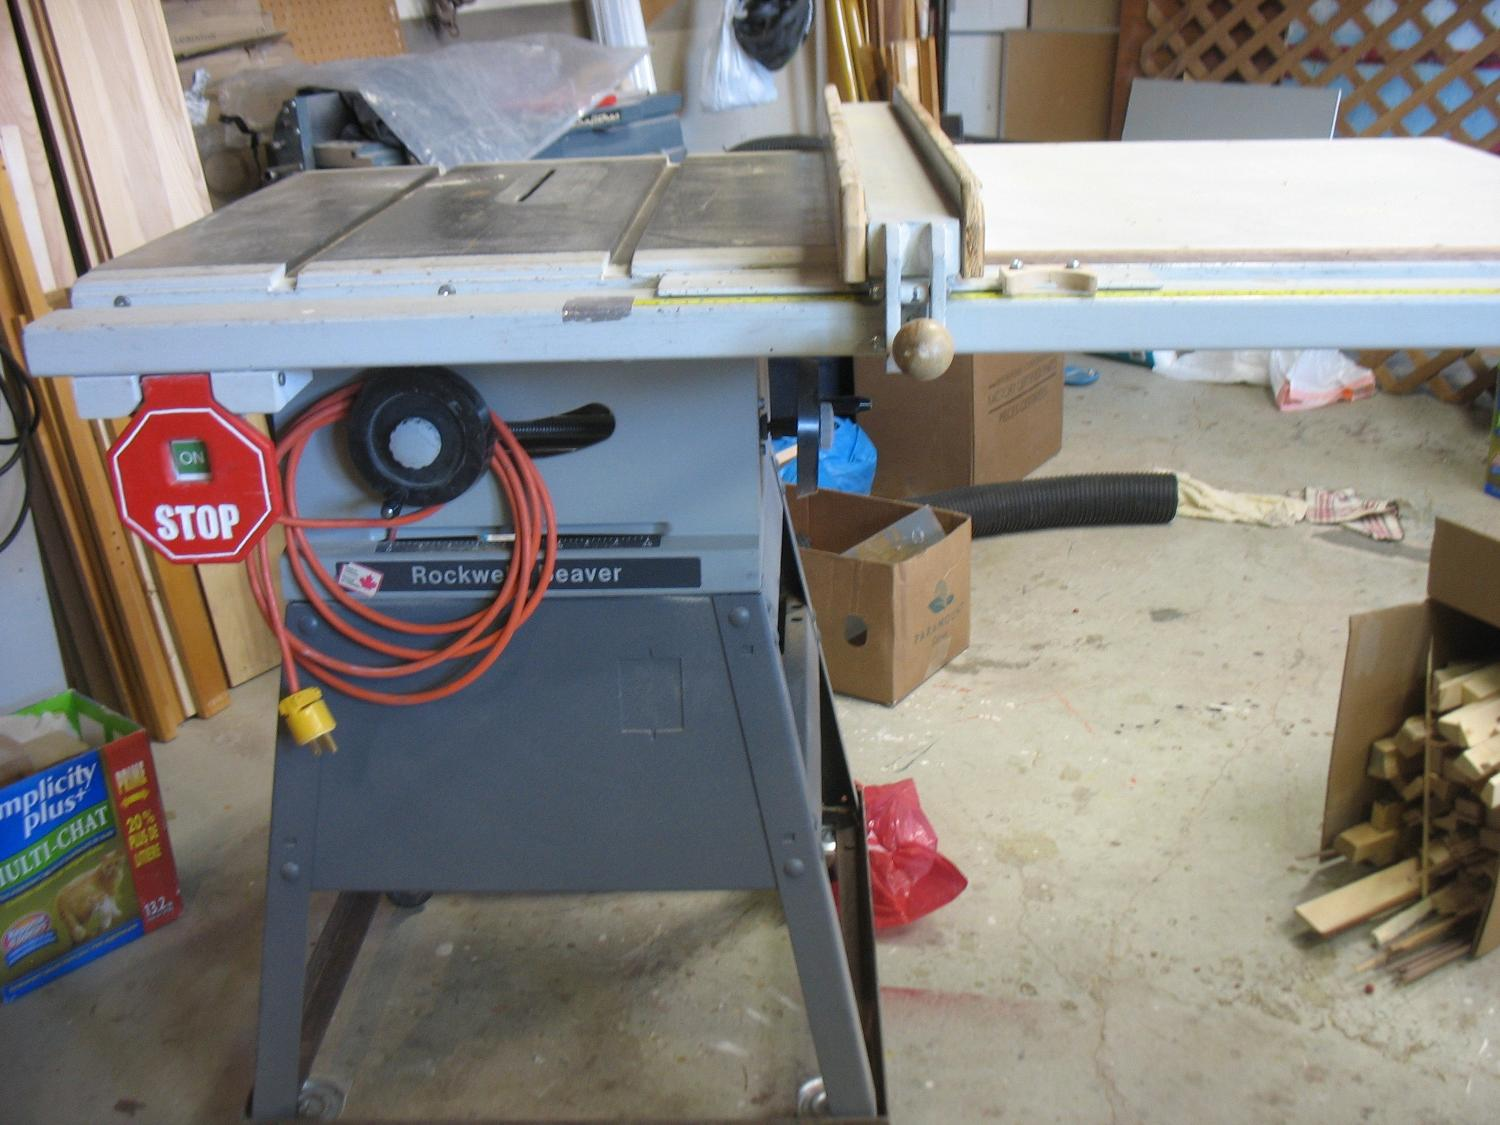 rockwell beaver table saw 6201 manual